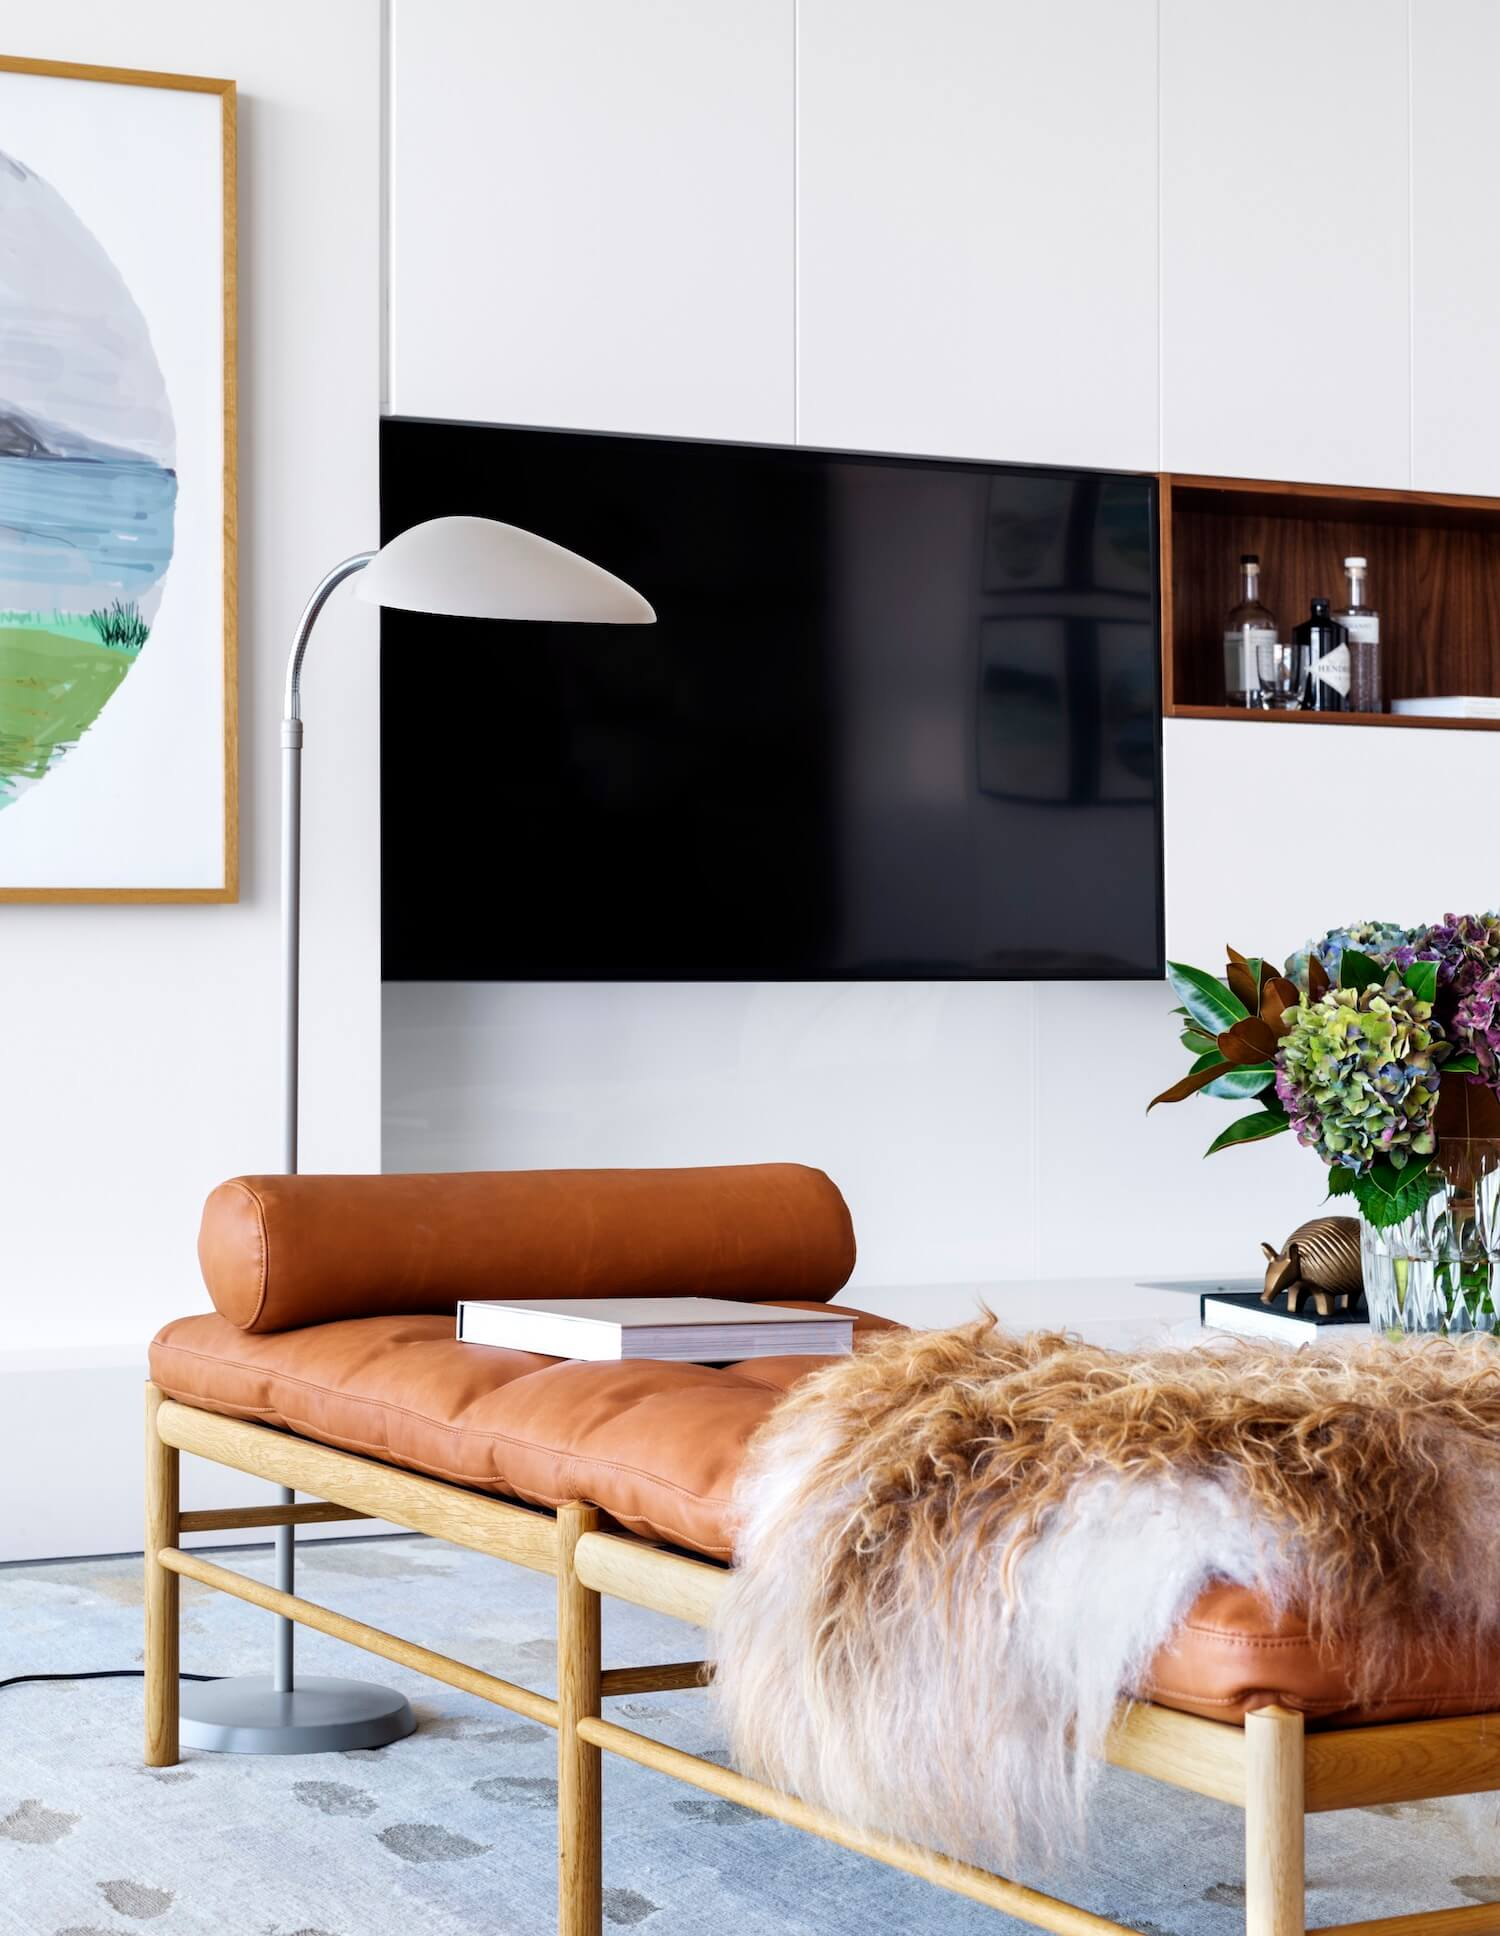 est living ana carin design barangaroo apartment lounge